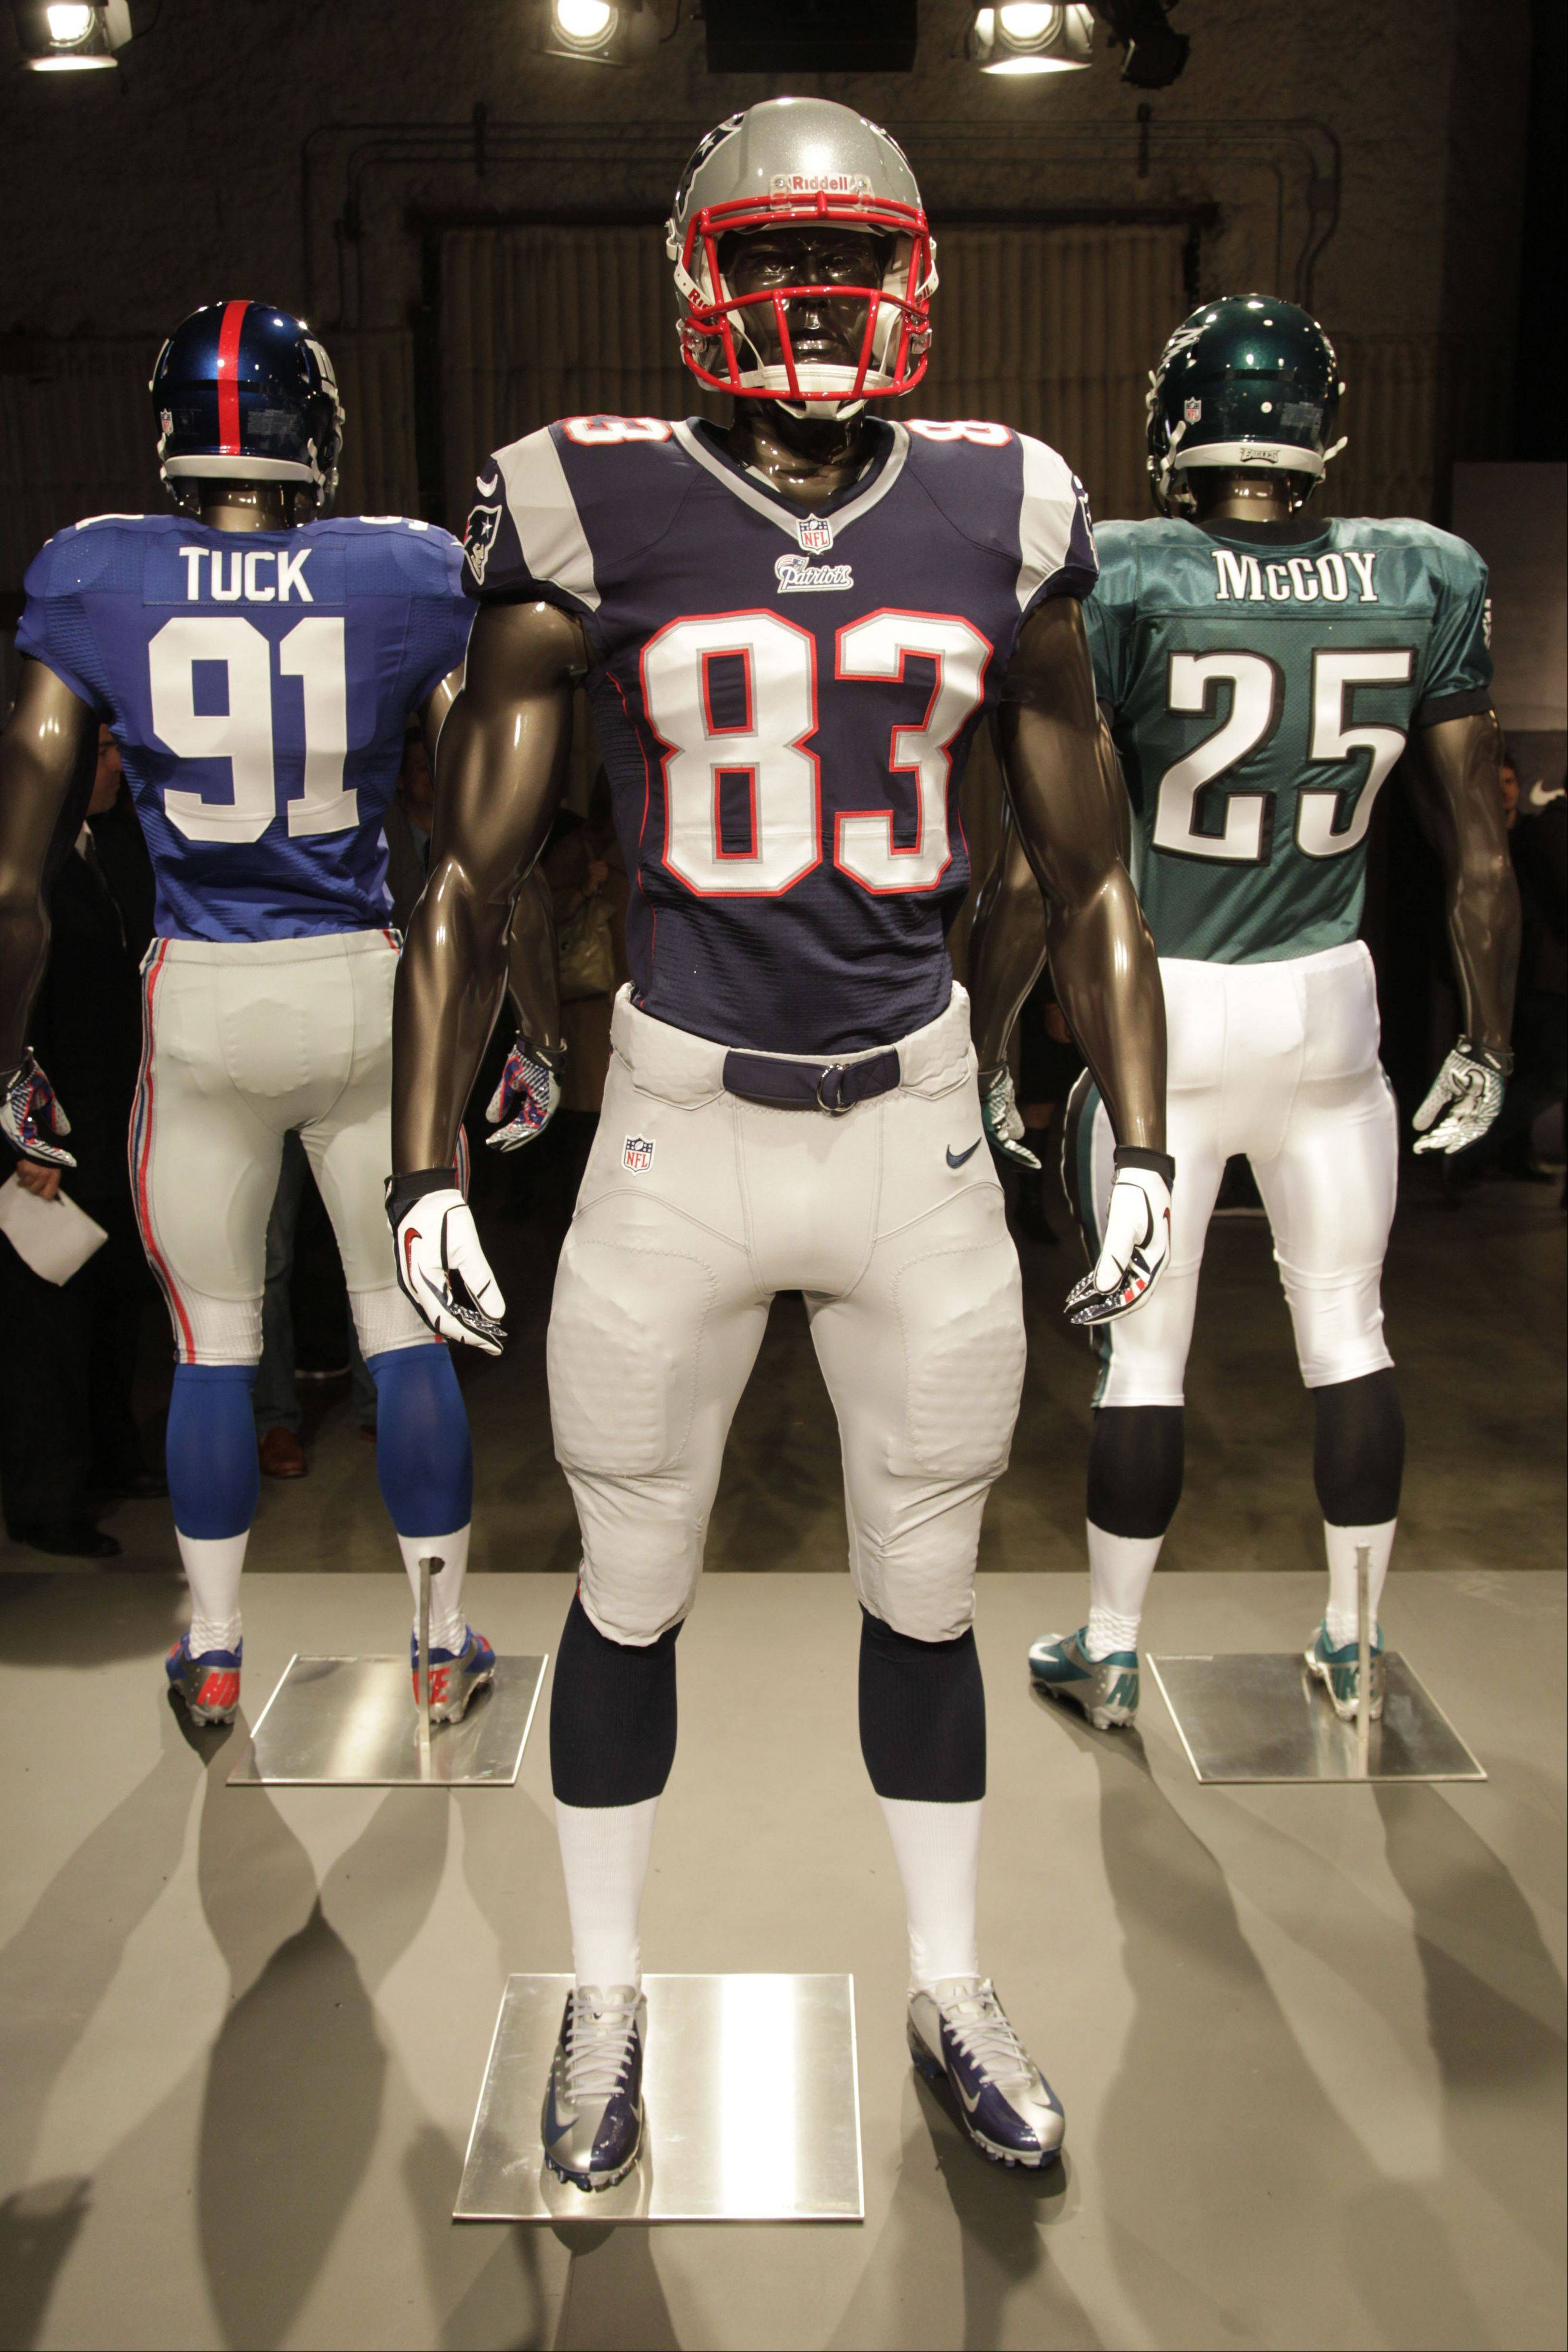 The new New England Patriots uniform is displayed on a mannequin in New York, Tuesday, April 3, 2012. NFL has unveiled its new sleek uniforms designed by Nike. While most of the new uniforms are not very different visually, they all are made with new technology that make them lighter, dryer and more comfortable.